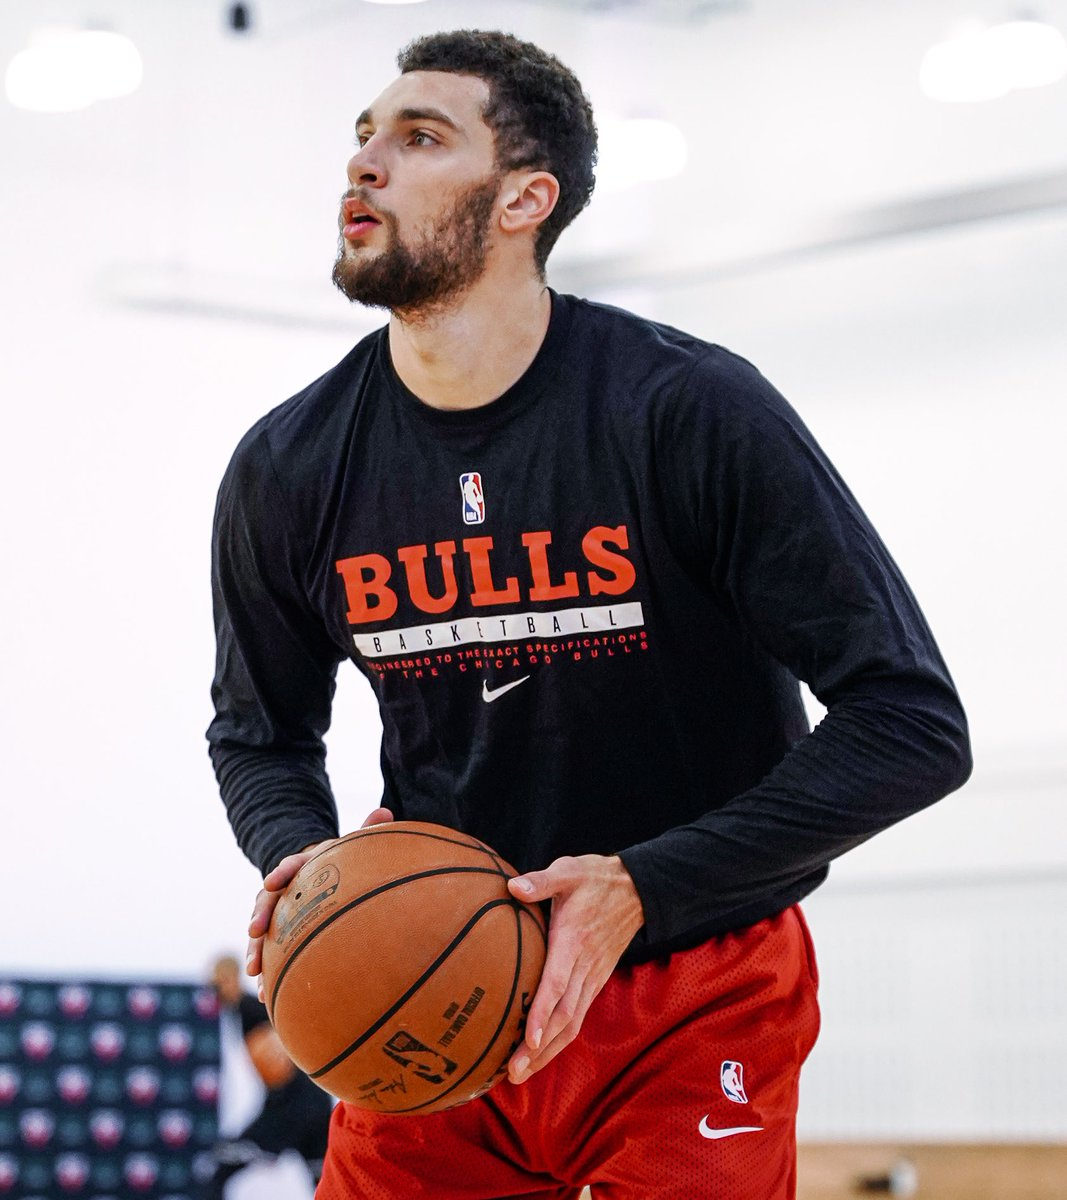 Replying to @chicagobulls: Feels great to have our guys back 🙏  @BMOHarrisBank l #BullsNation